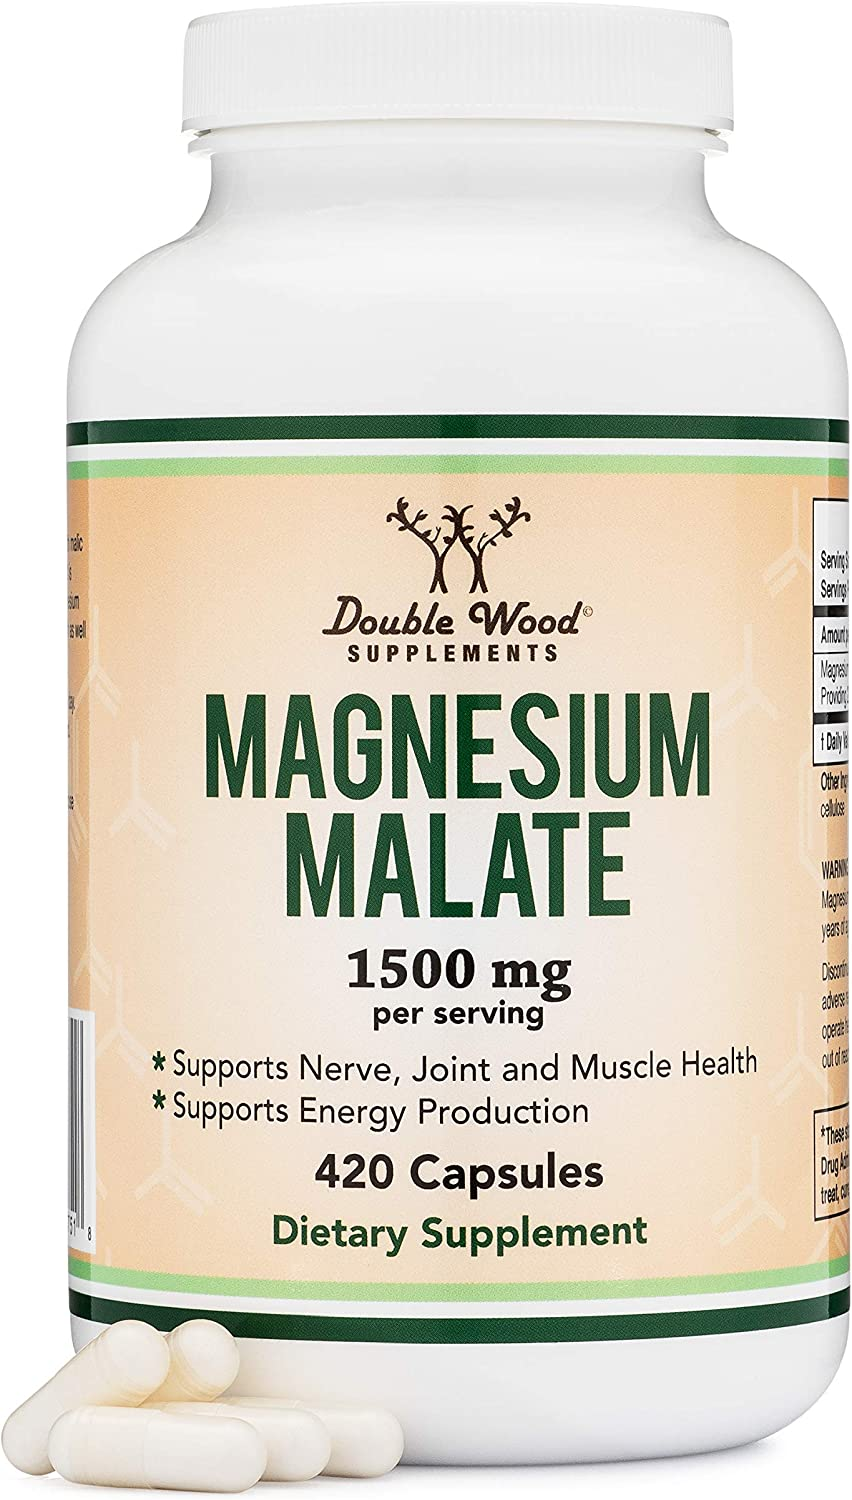 Magnesium Malate Capsules (420 Count) - 1,500mg Per Serving (Magnesium bonded to Malic Acid), Third Party Tested, Vegan Friendly, Non-GMO, Gluten Free, Made in the USA by Double Wood Supplements